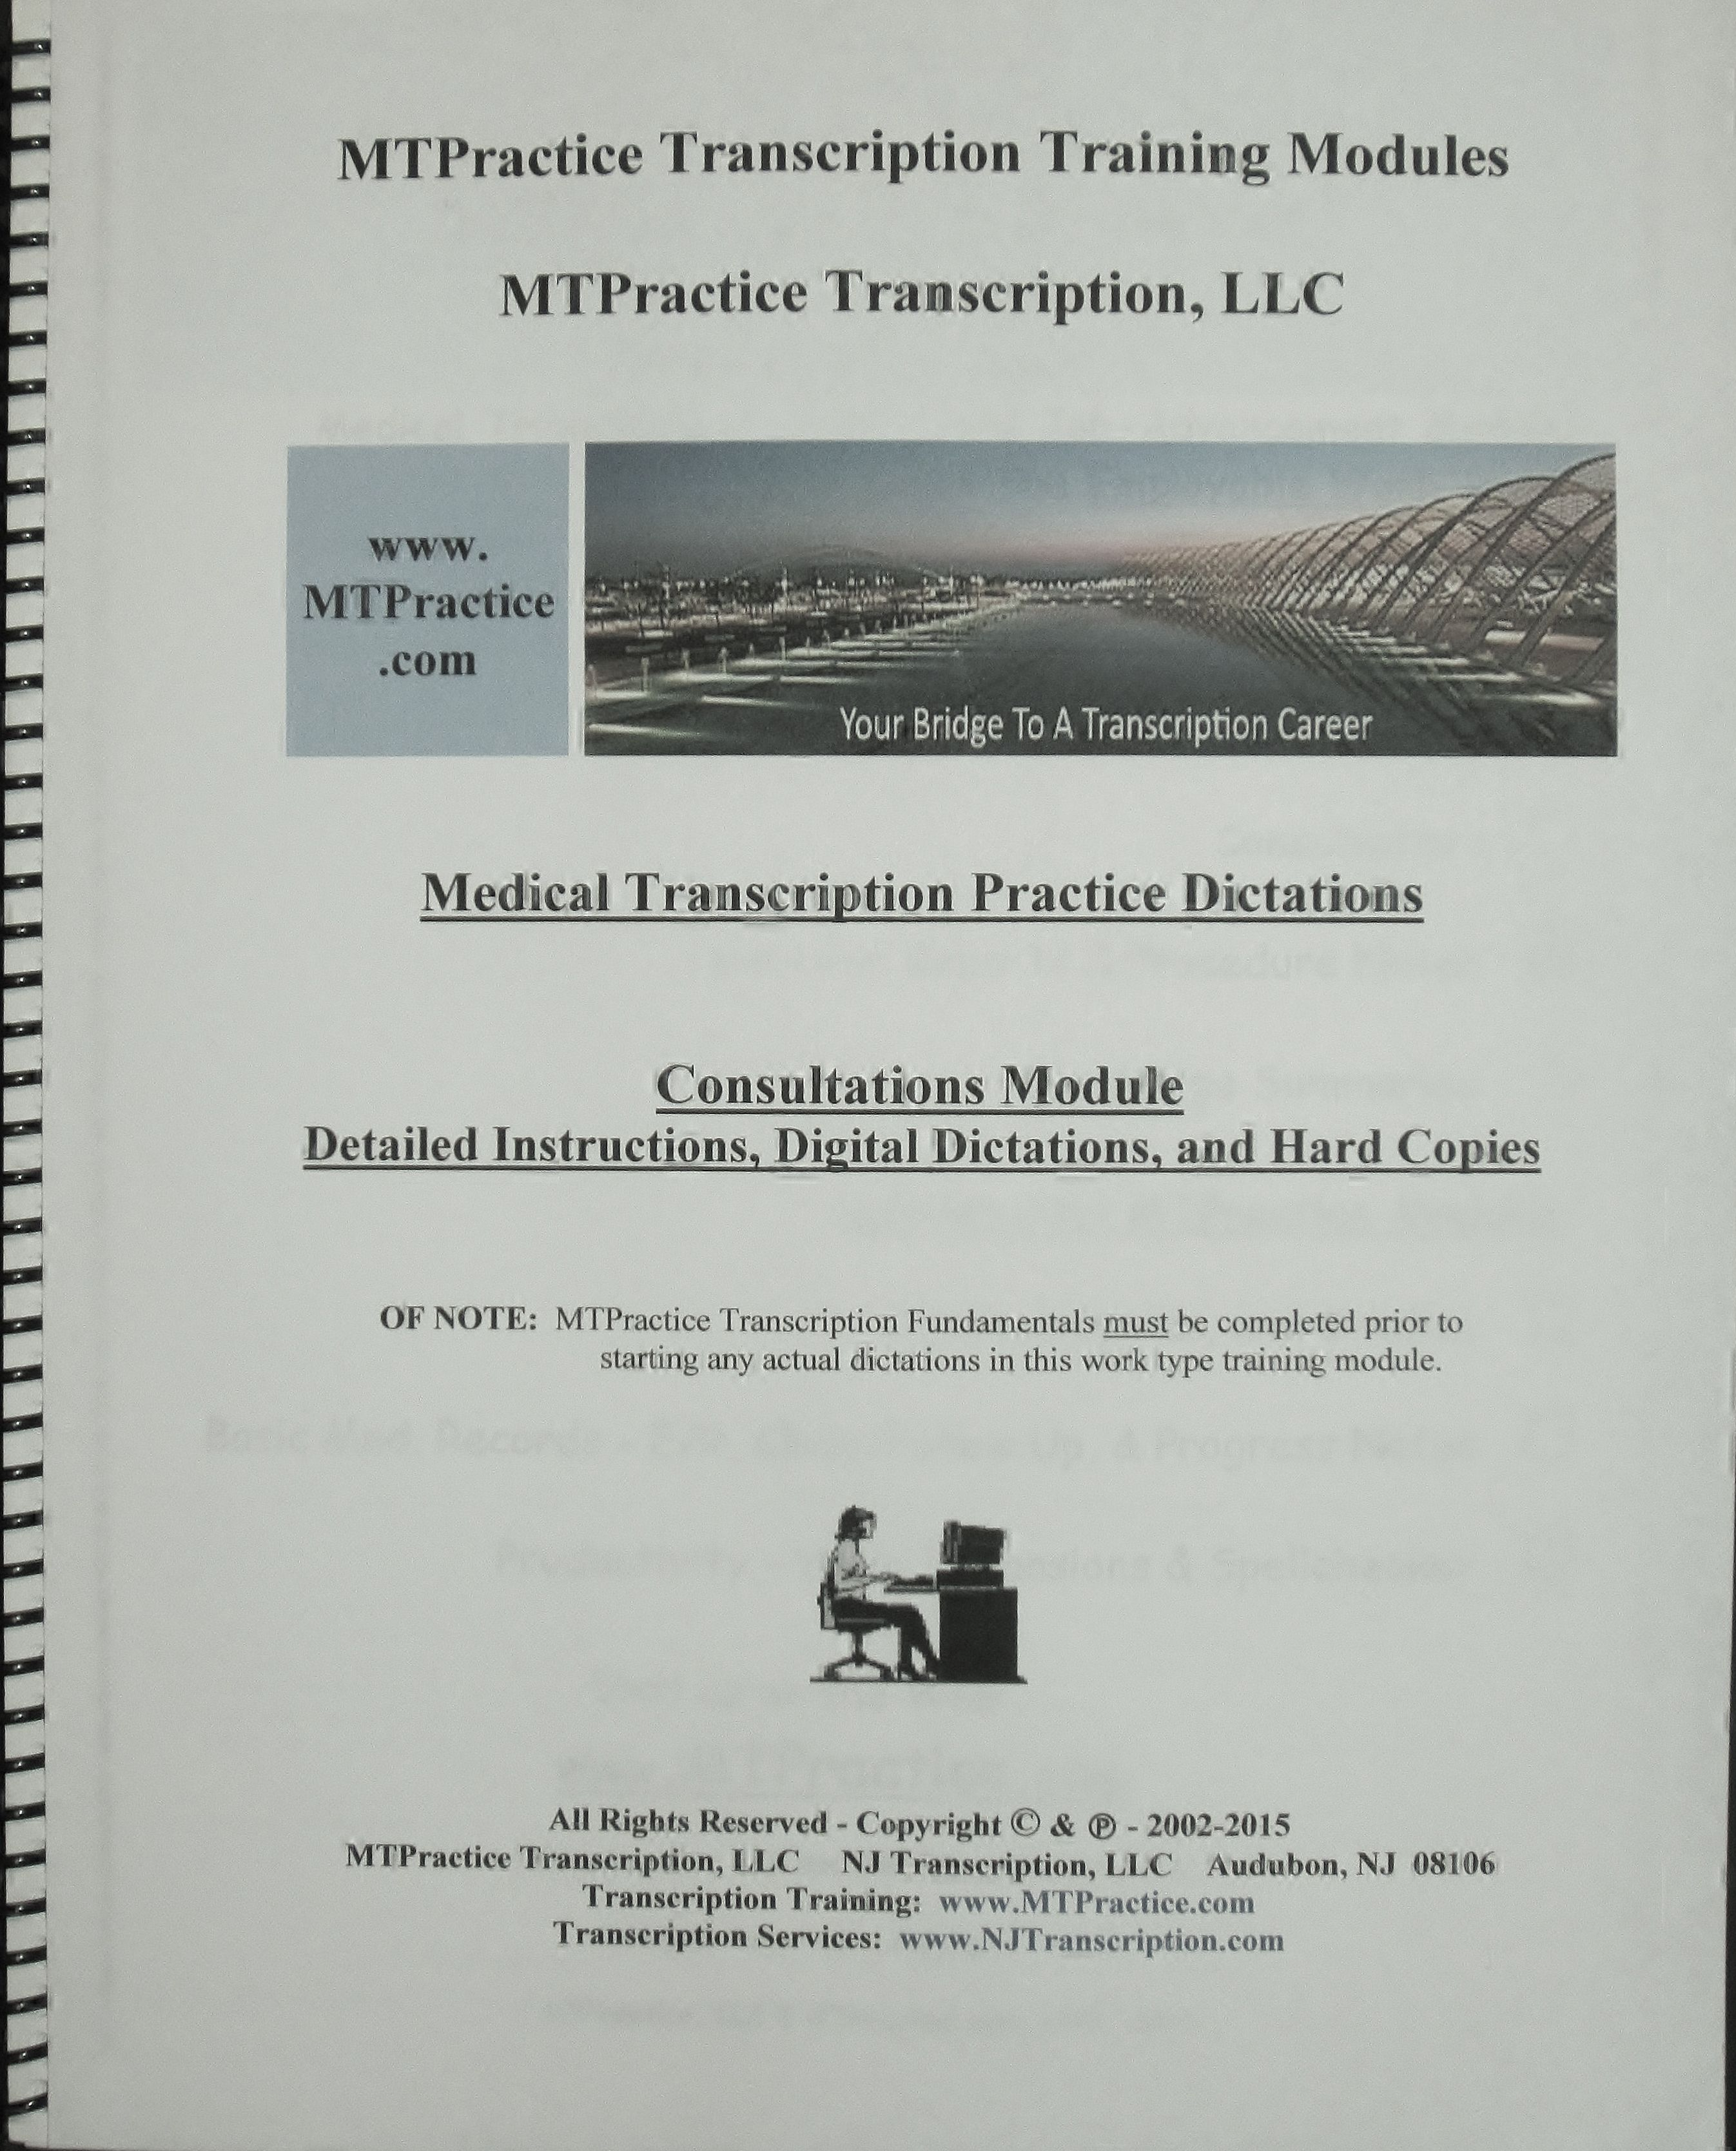 Total instruction: 22 pages  Instr  and hard copy reports